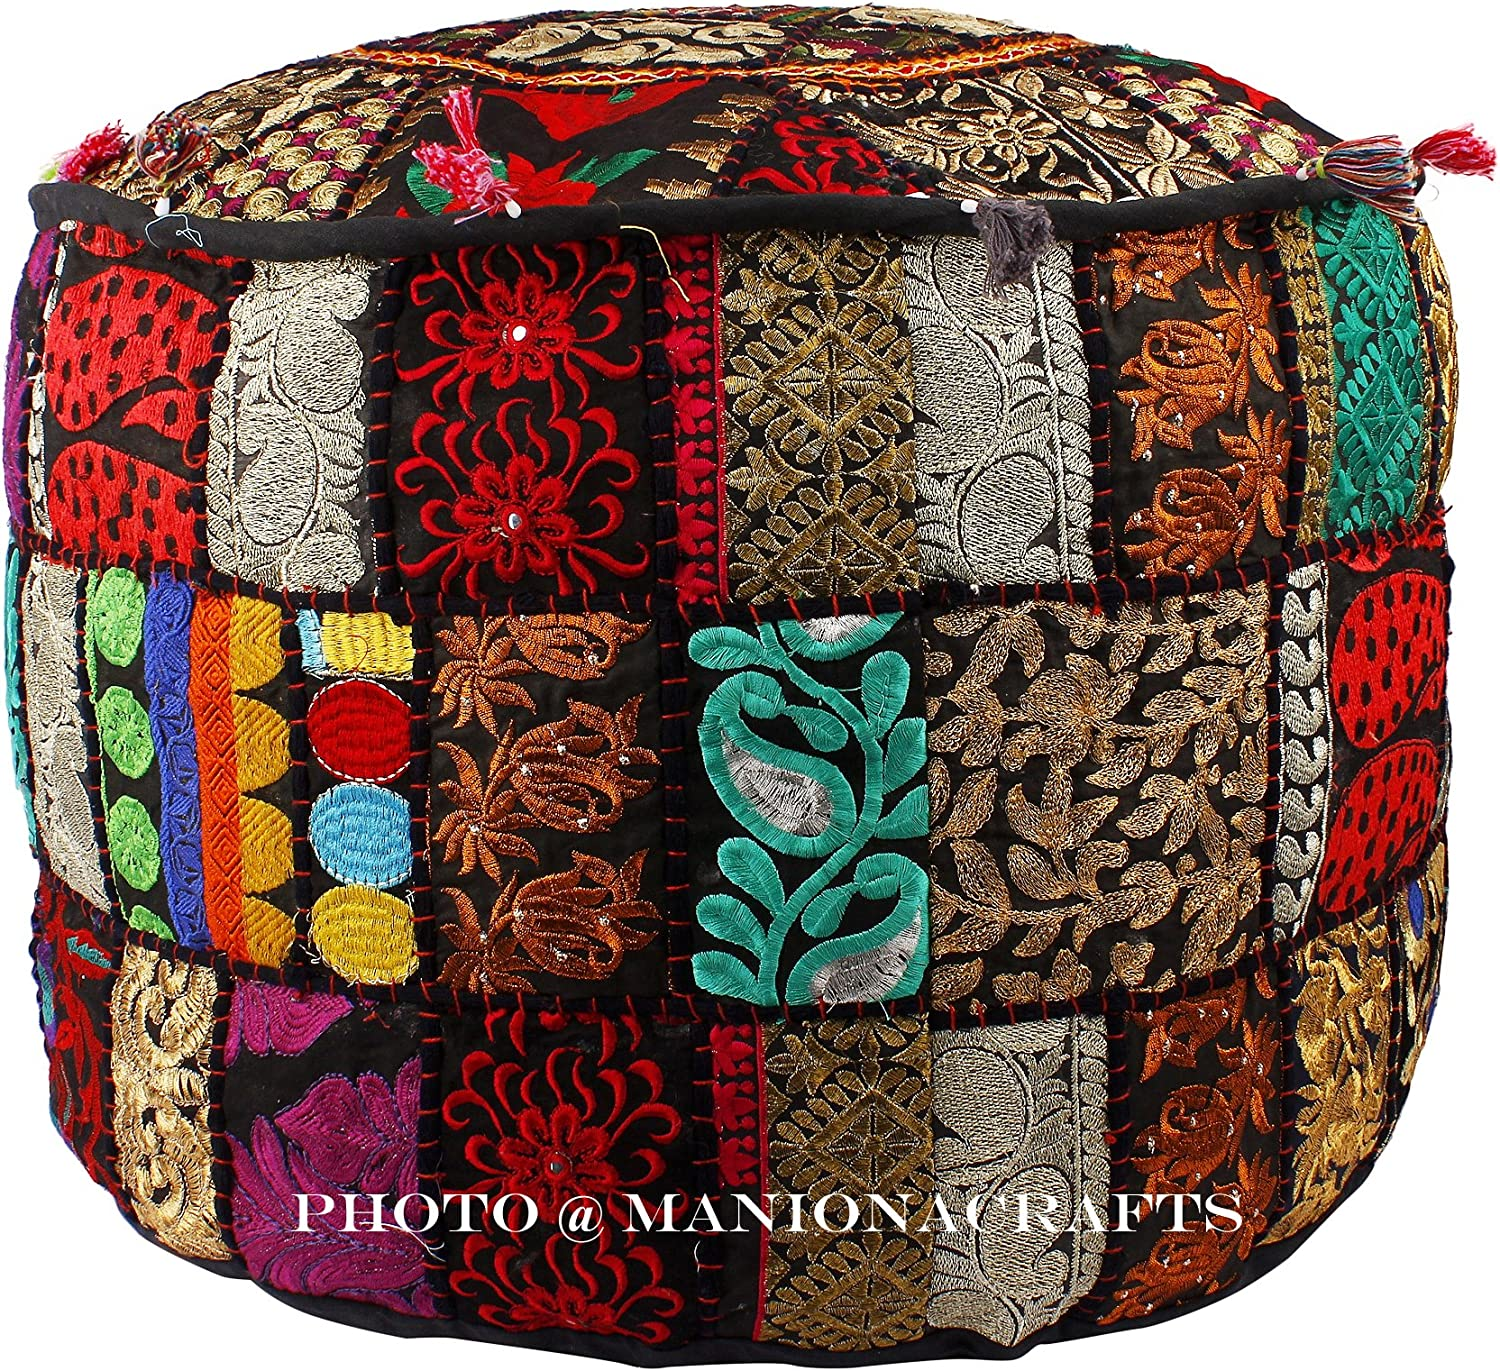 Maniona Crafts Indian Patchwork Pouf Max Courier shipping free shipping 69% OFF Room Living Po Cover